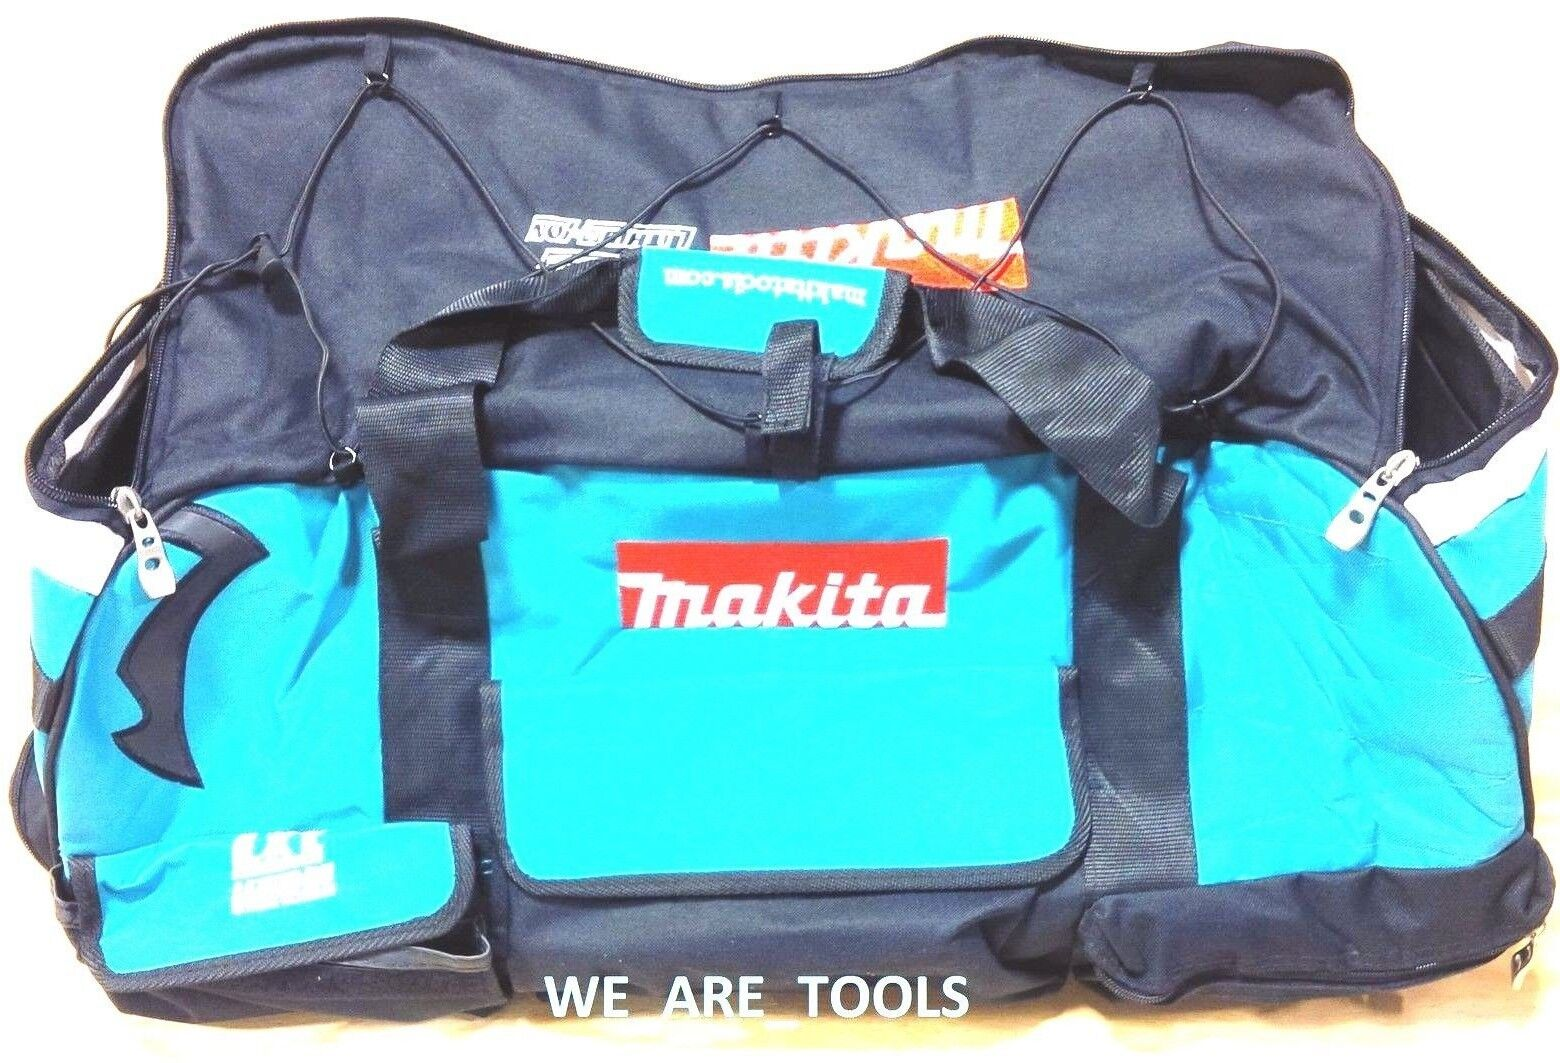 Large Makita Heavy Duty Canvas Bag/Case 831269-3 With Wheels